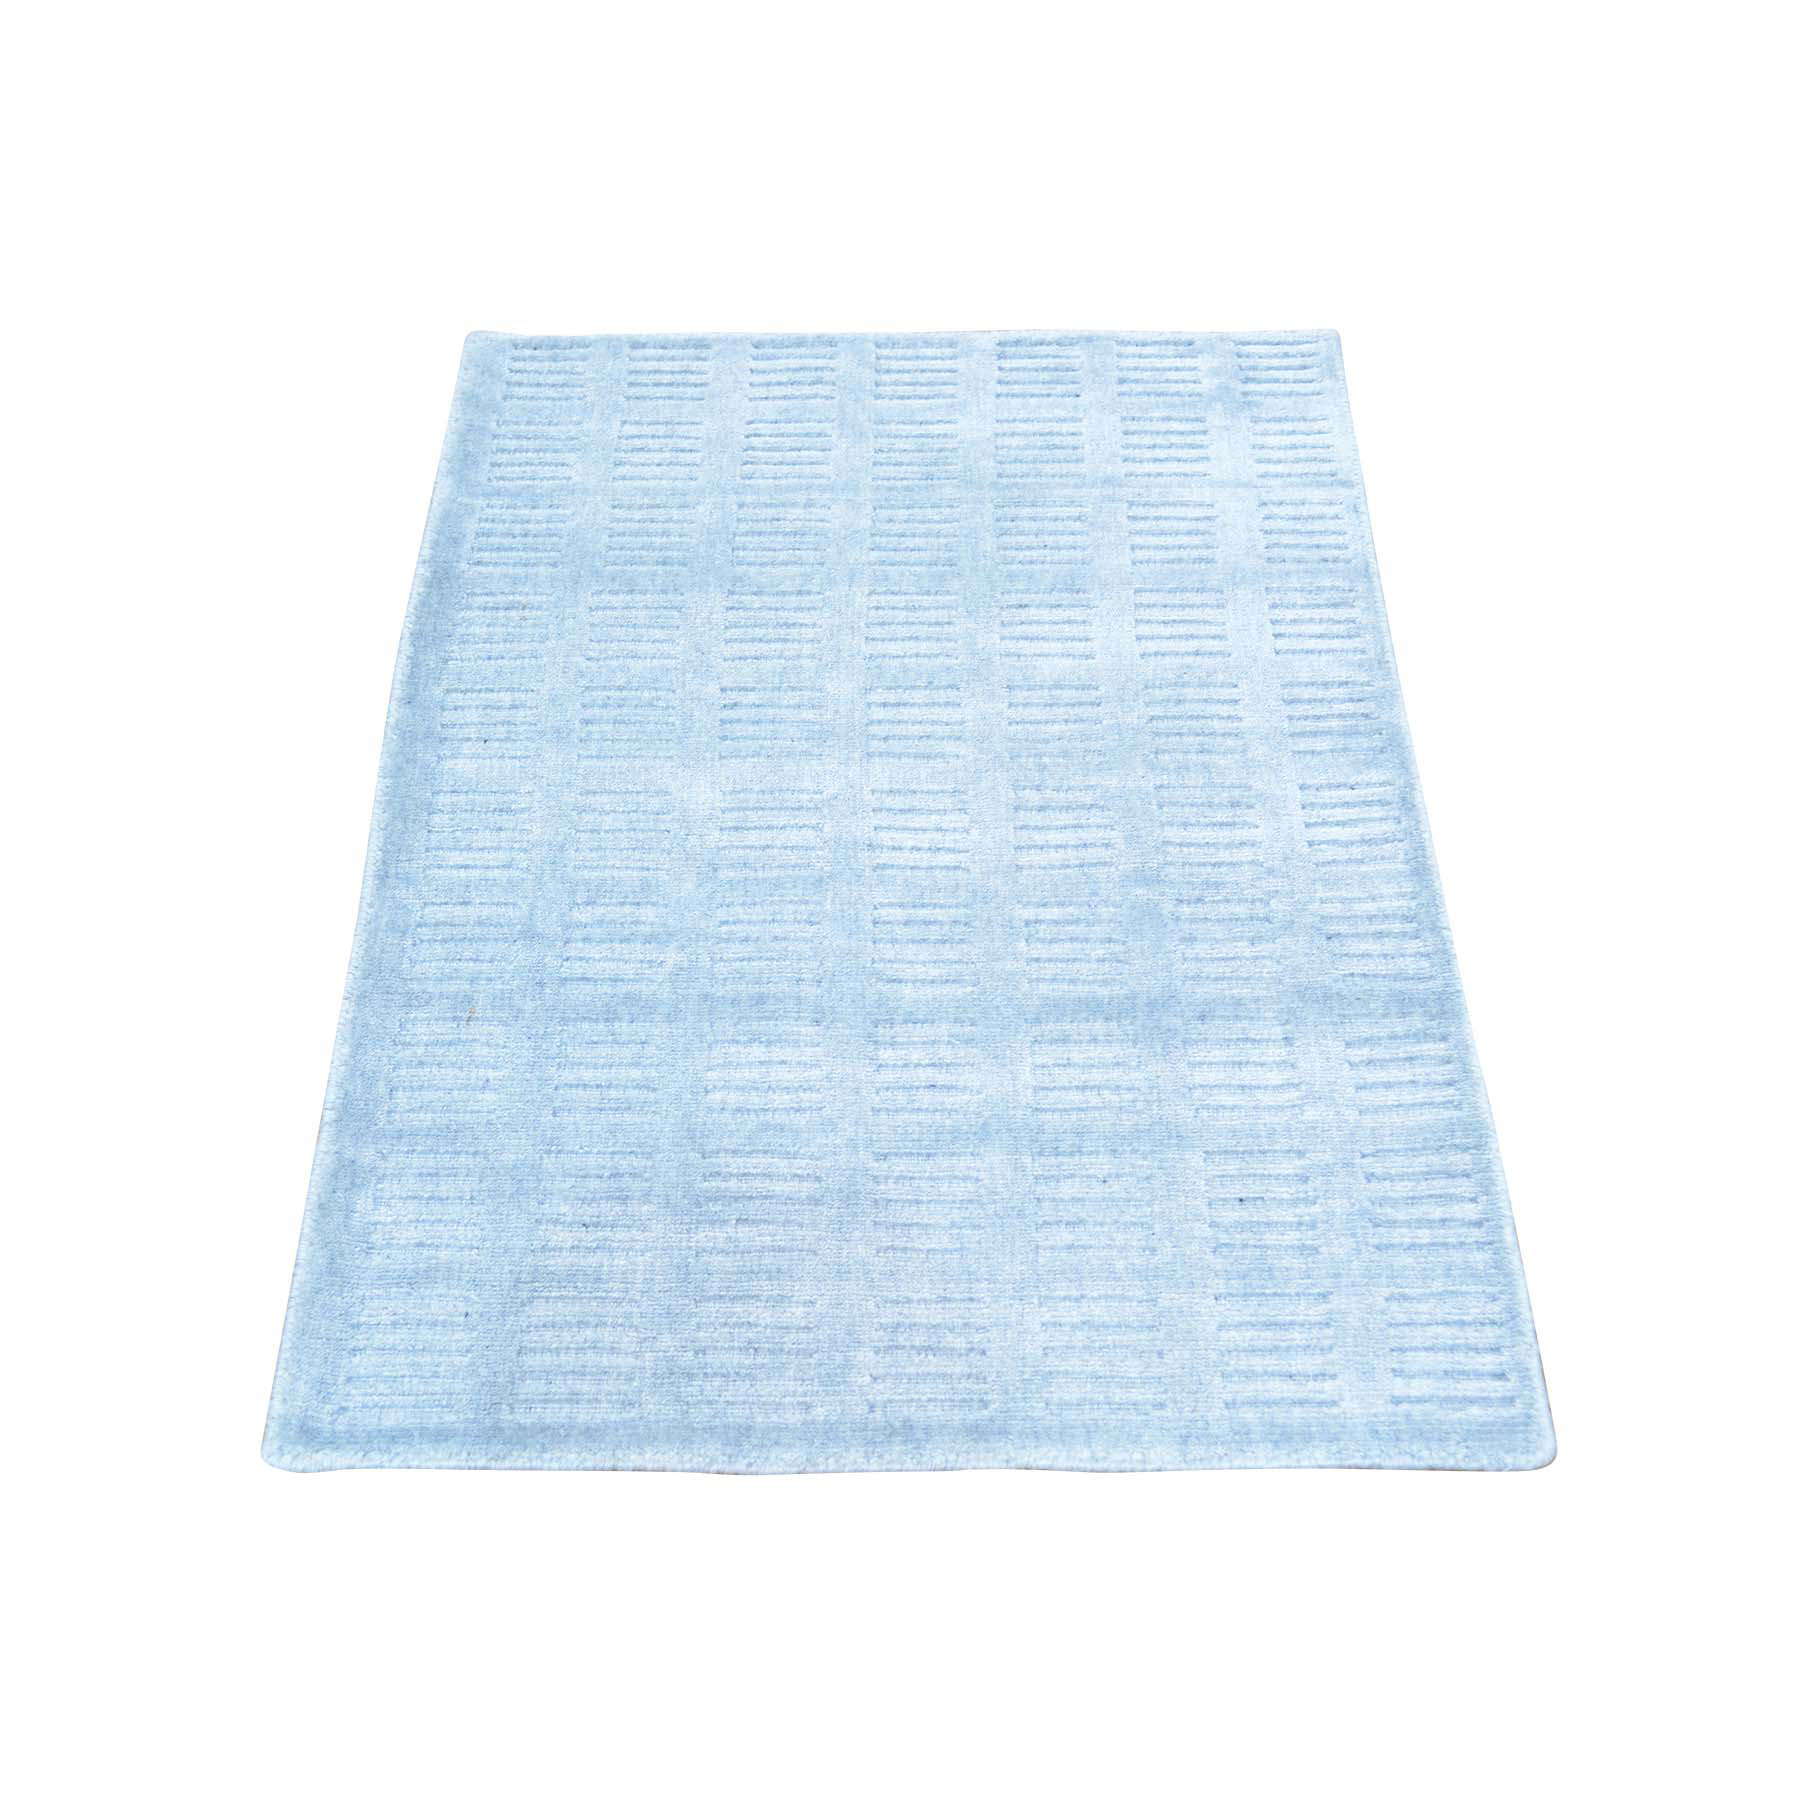 2'X3' Wool And Silk Tone On Tone Hand Loomed Rug moab99d8